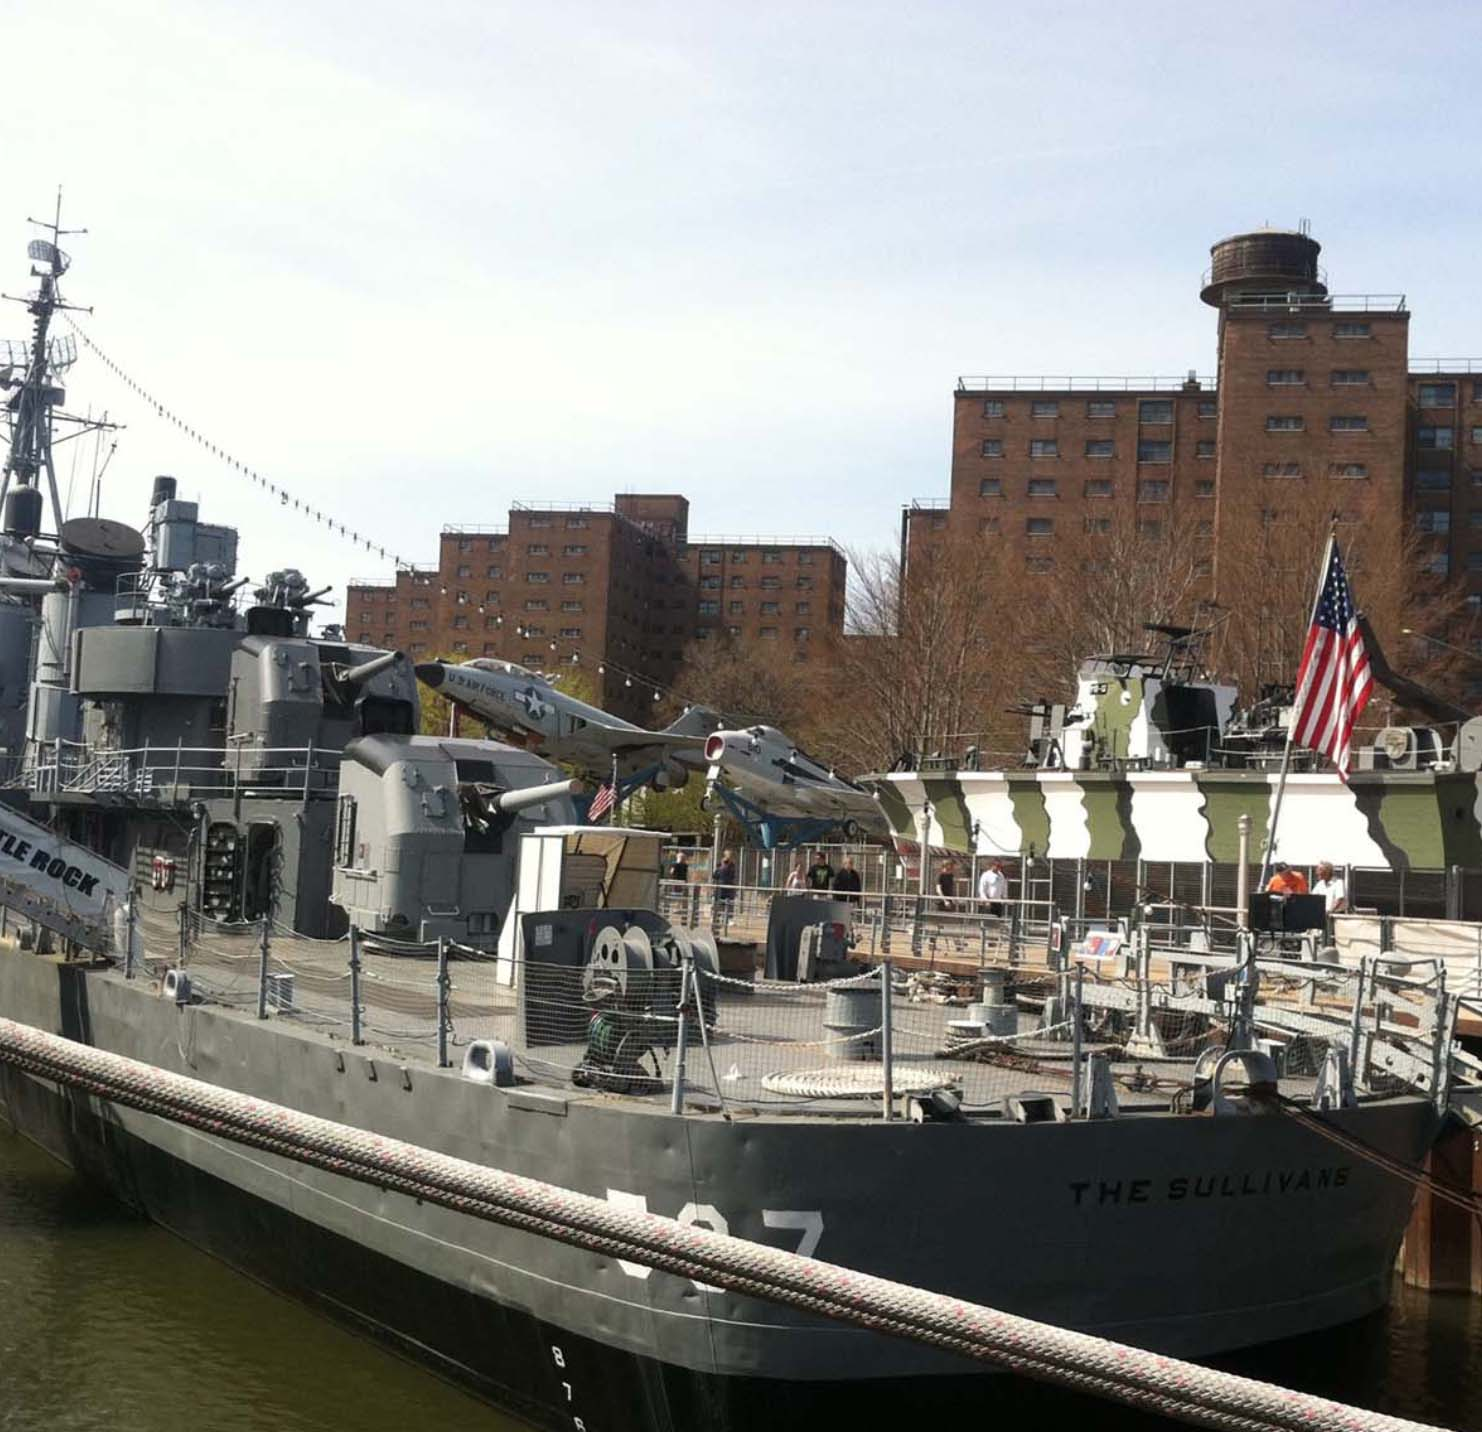 Things to do in Buffalo -  Buffalo Naval and Military Park